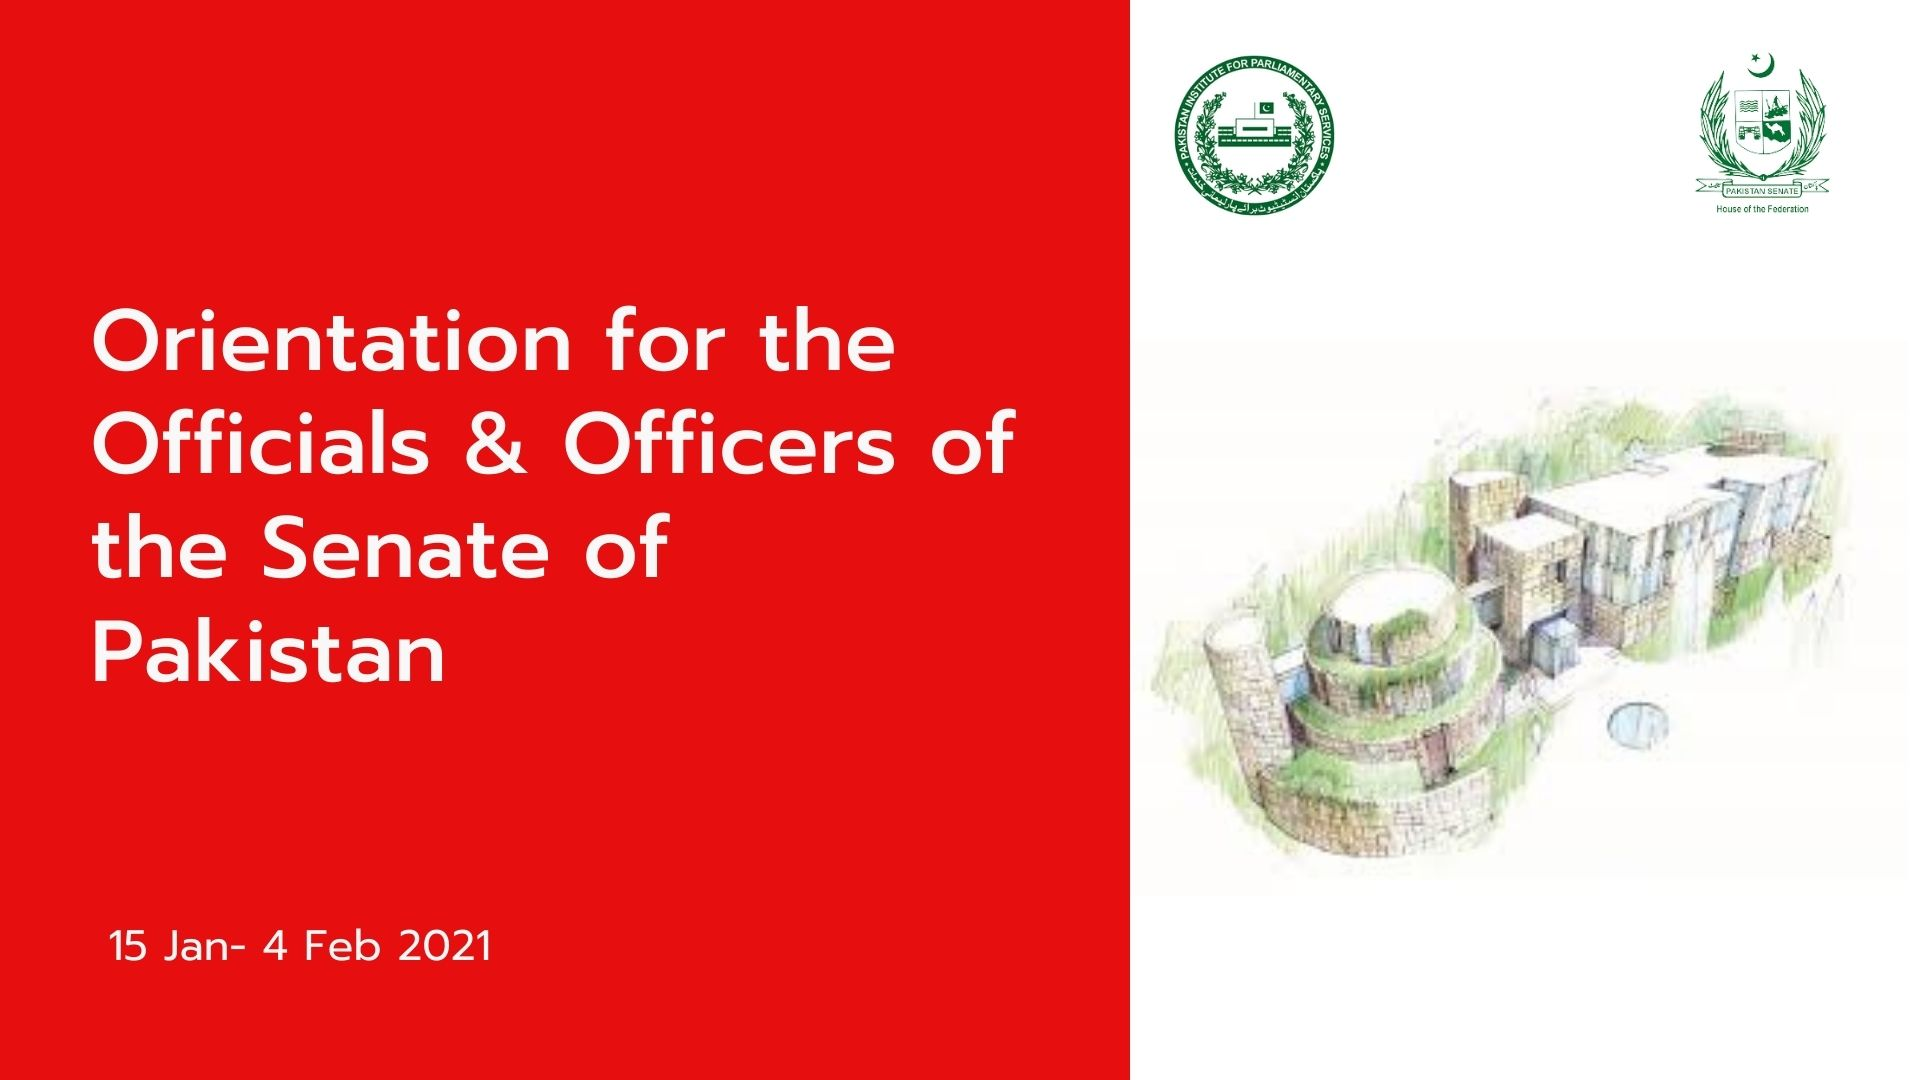 Orientation for Newly Appointed Officers & Officials of the Senate of Pakistan, Module I